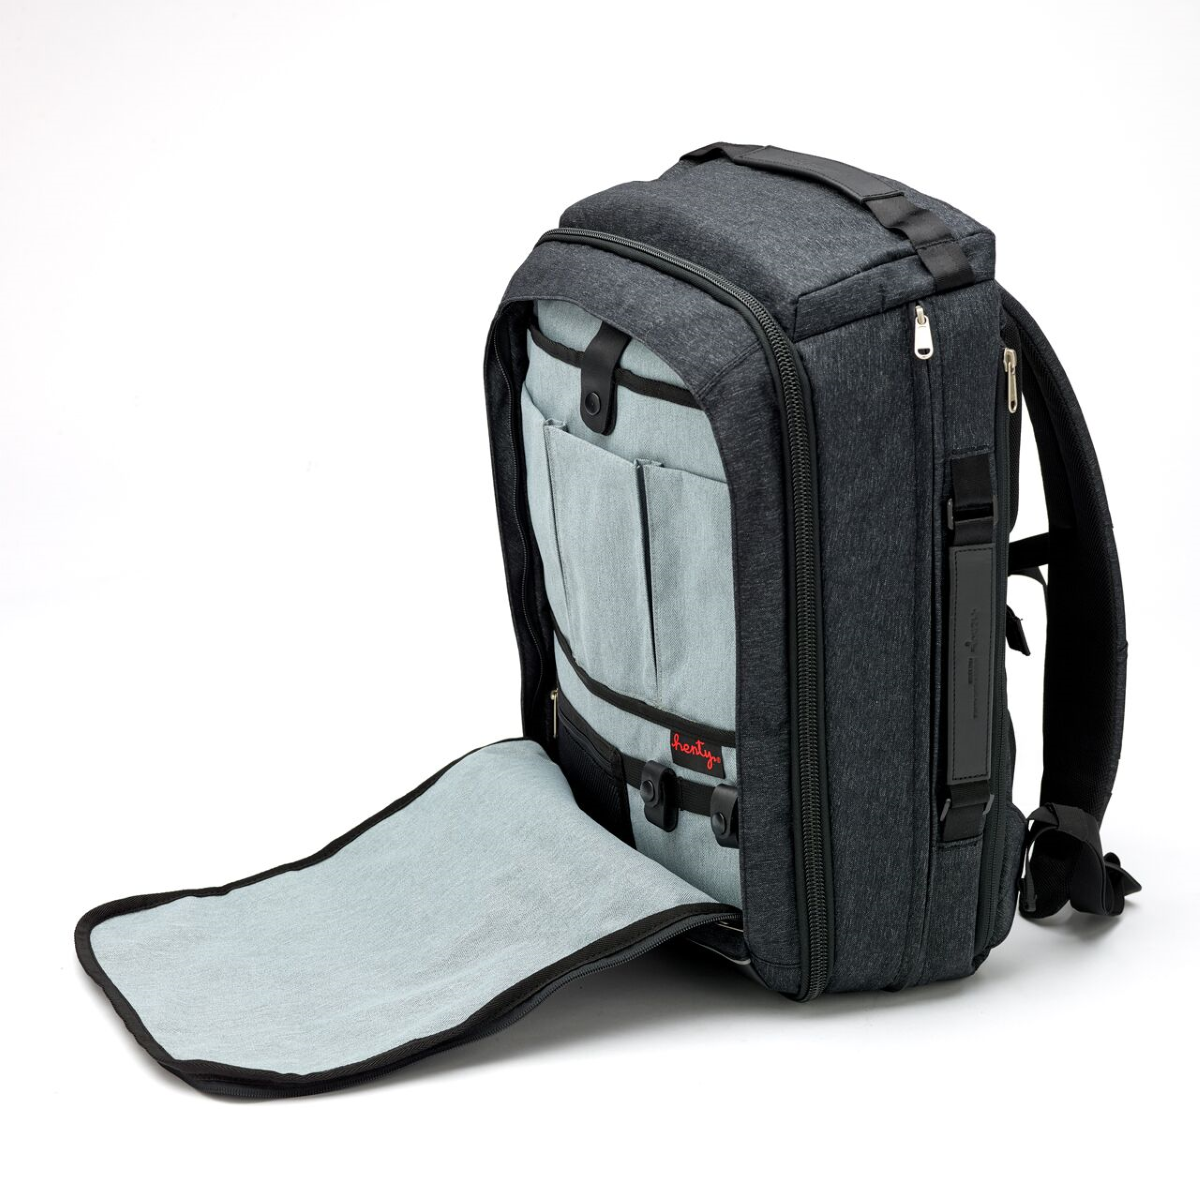 Henty Travel Brief Backpack Carry Clever Design